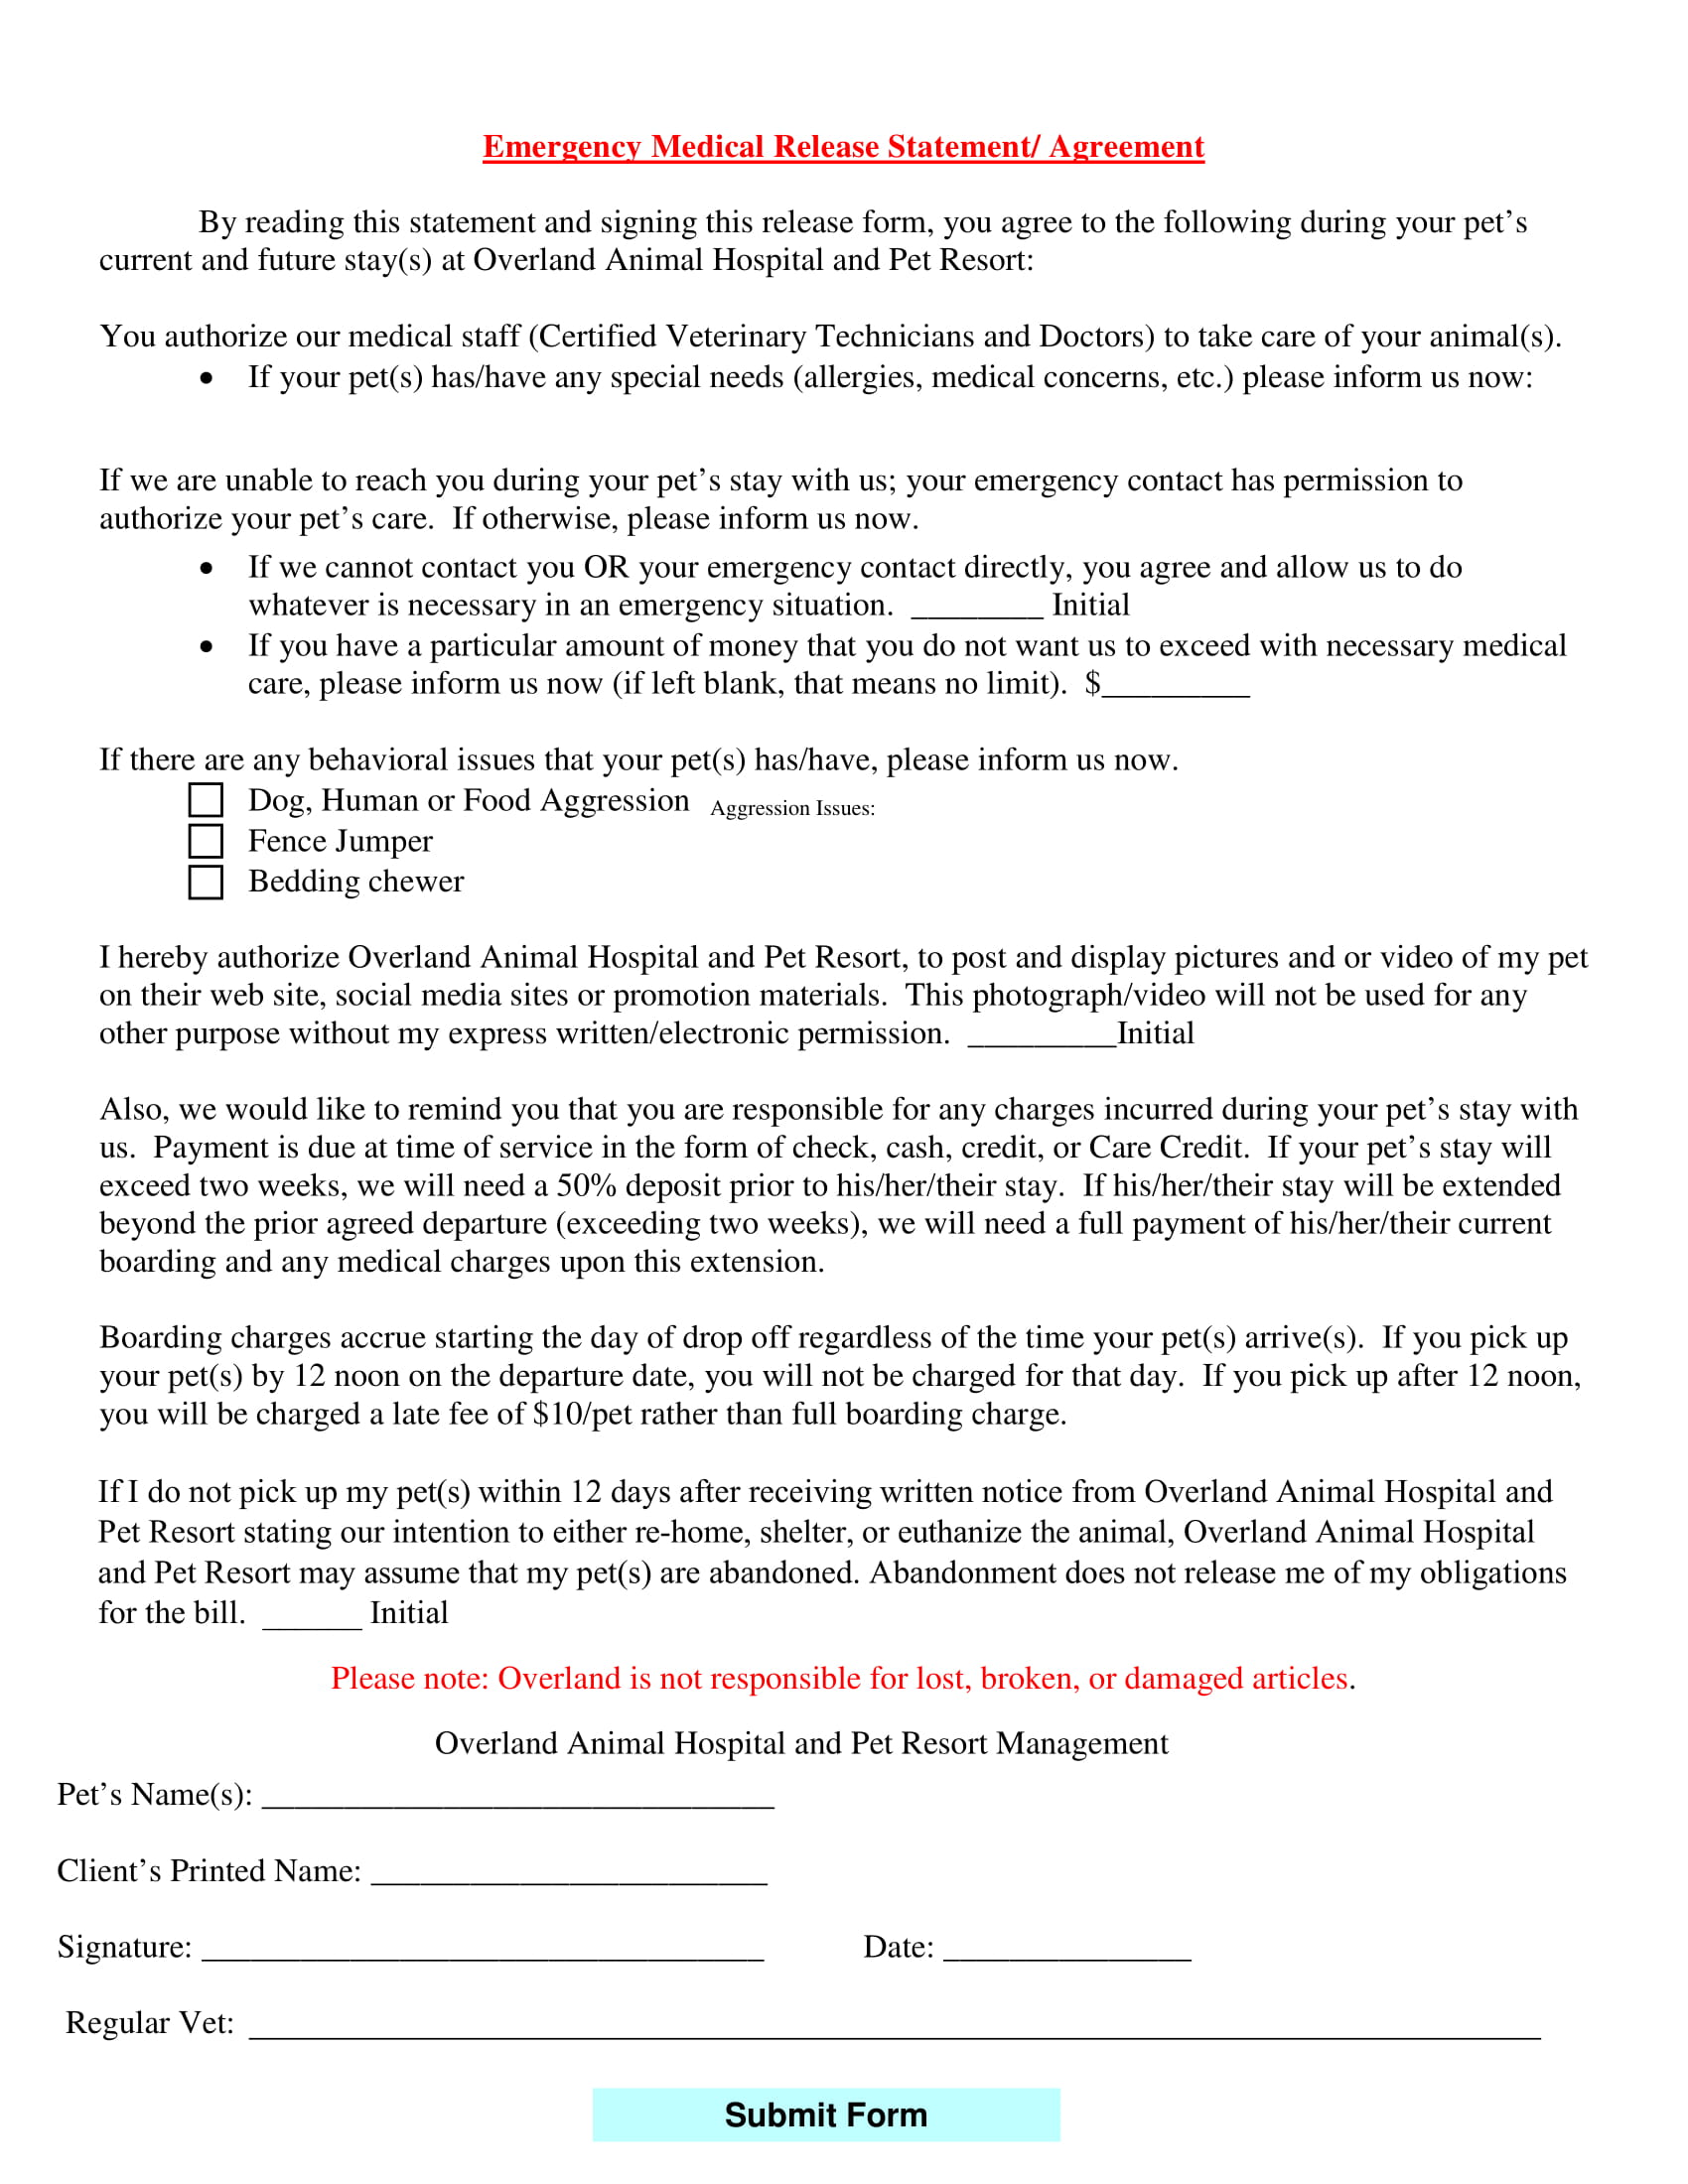 pet emergency medical release agreement contract form 1